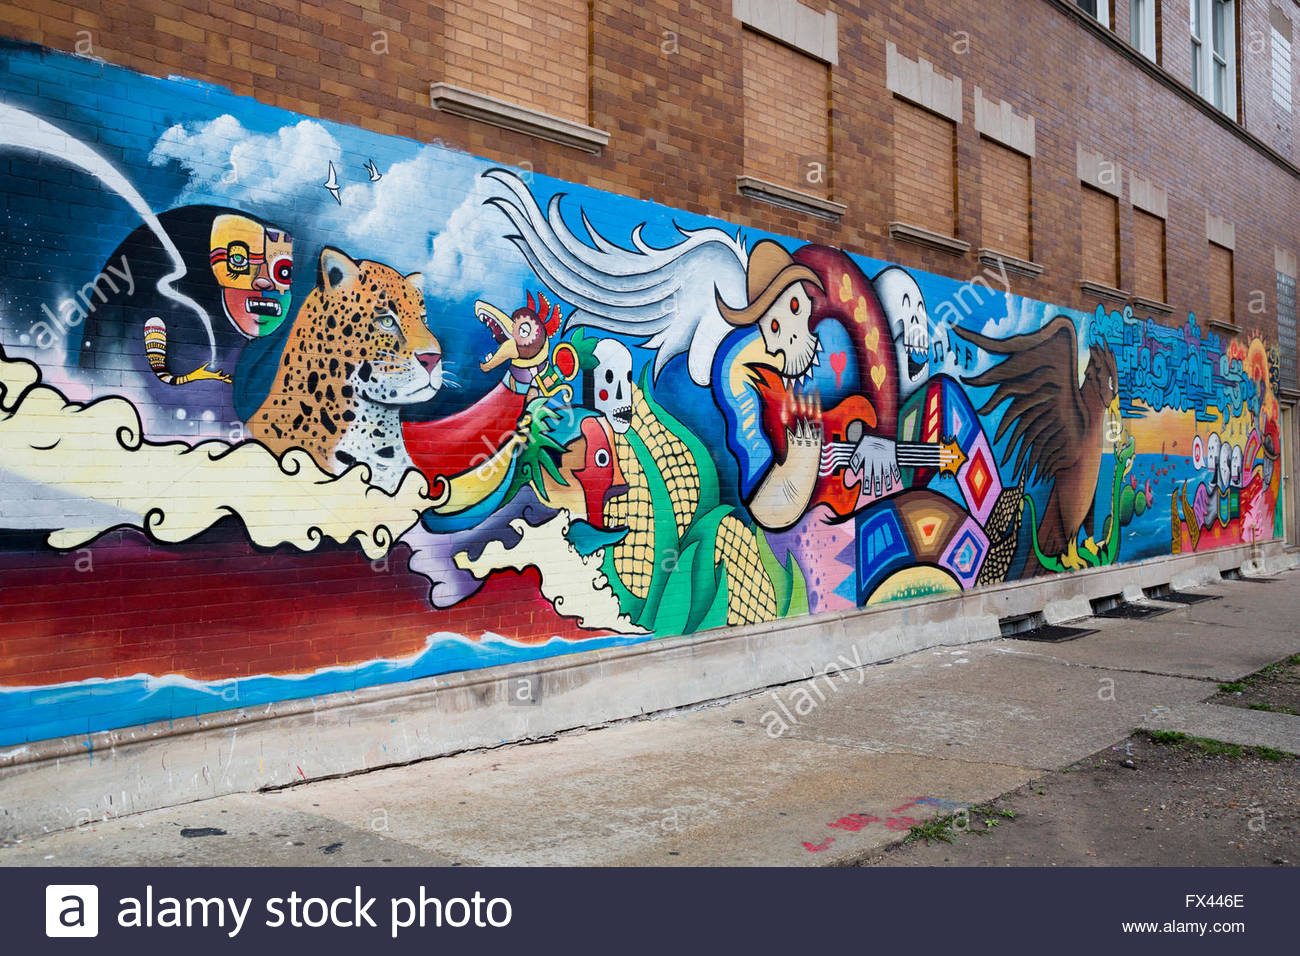 chicago-illinois-a-mural-on-a-building-in-the-largely-mexican-american-fx446e